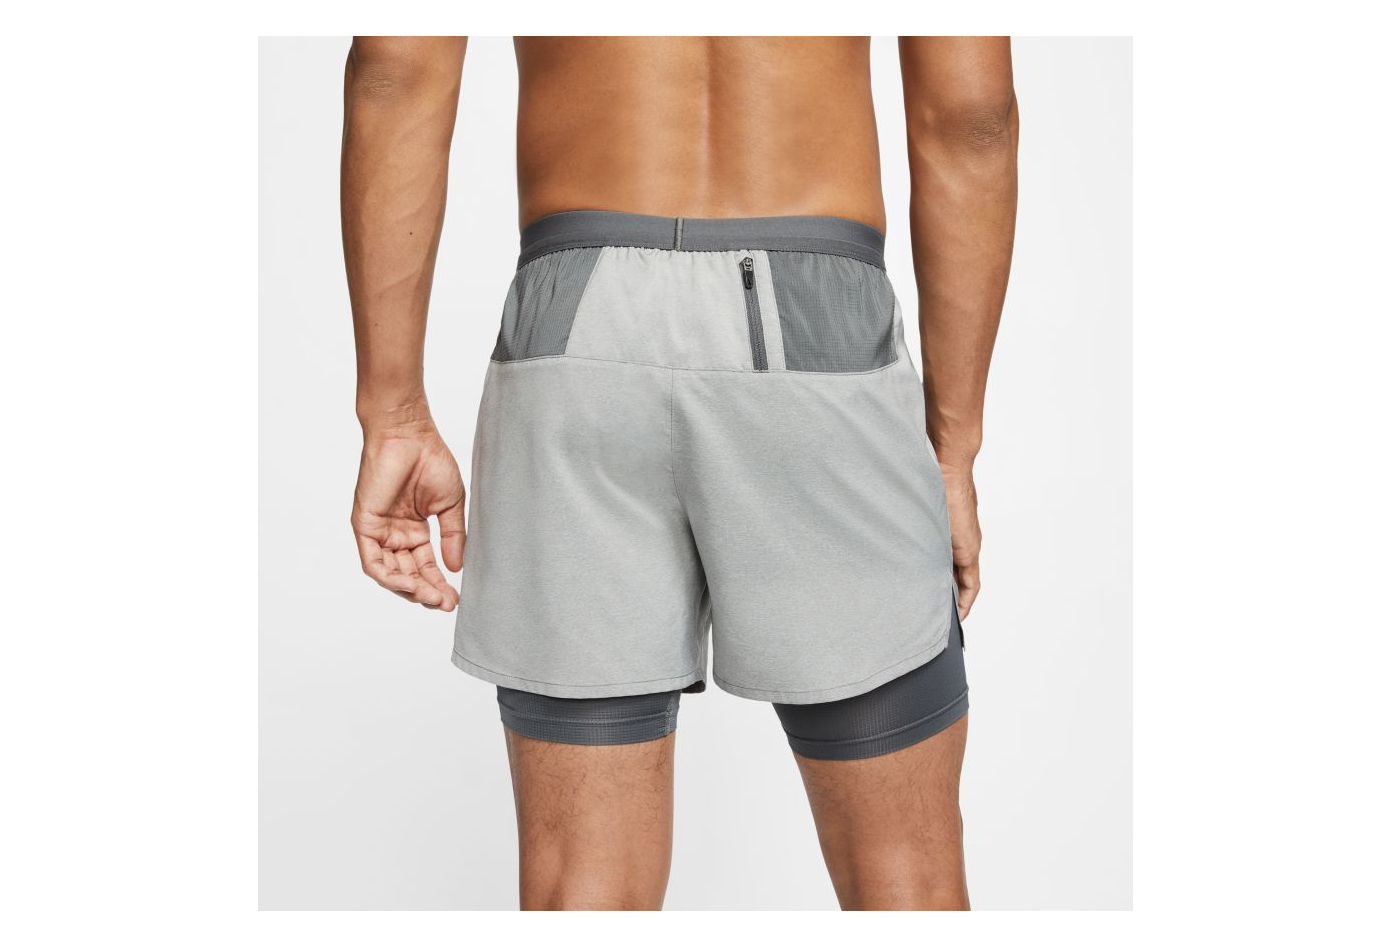 Blanco vistazo monitor  Nike Flex Stride 5 '' 2-in-1 Shorts Grau Herren | Alltricks.de